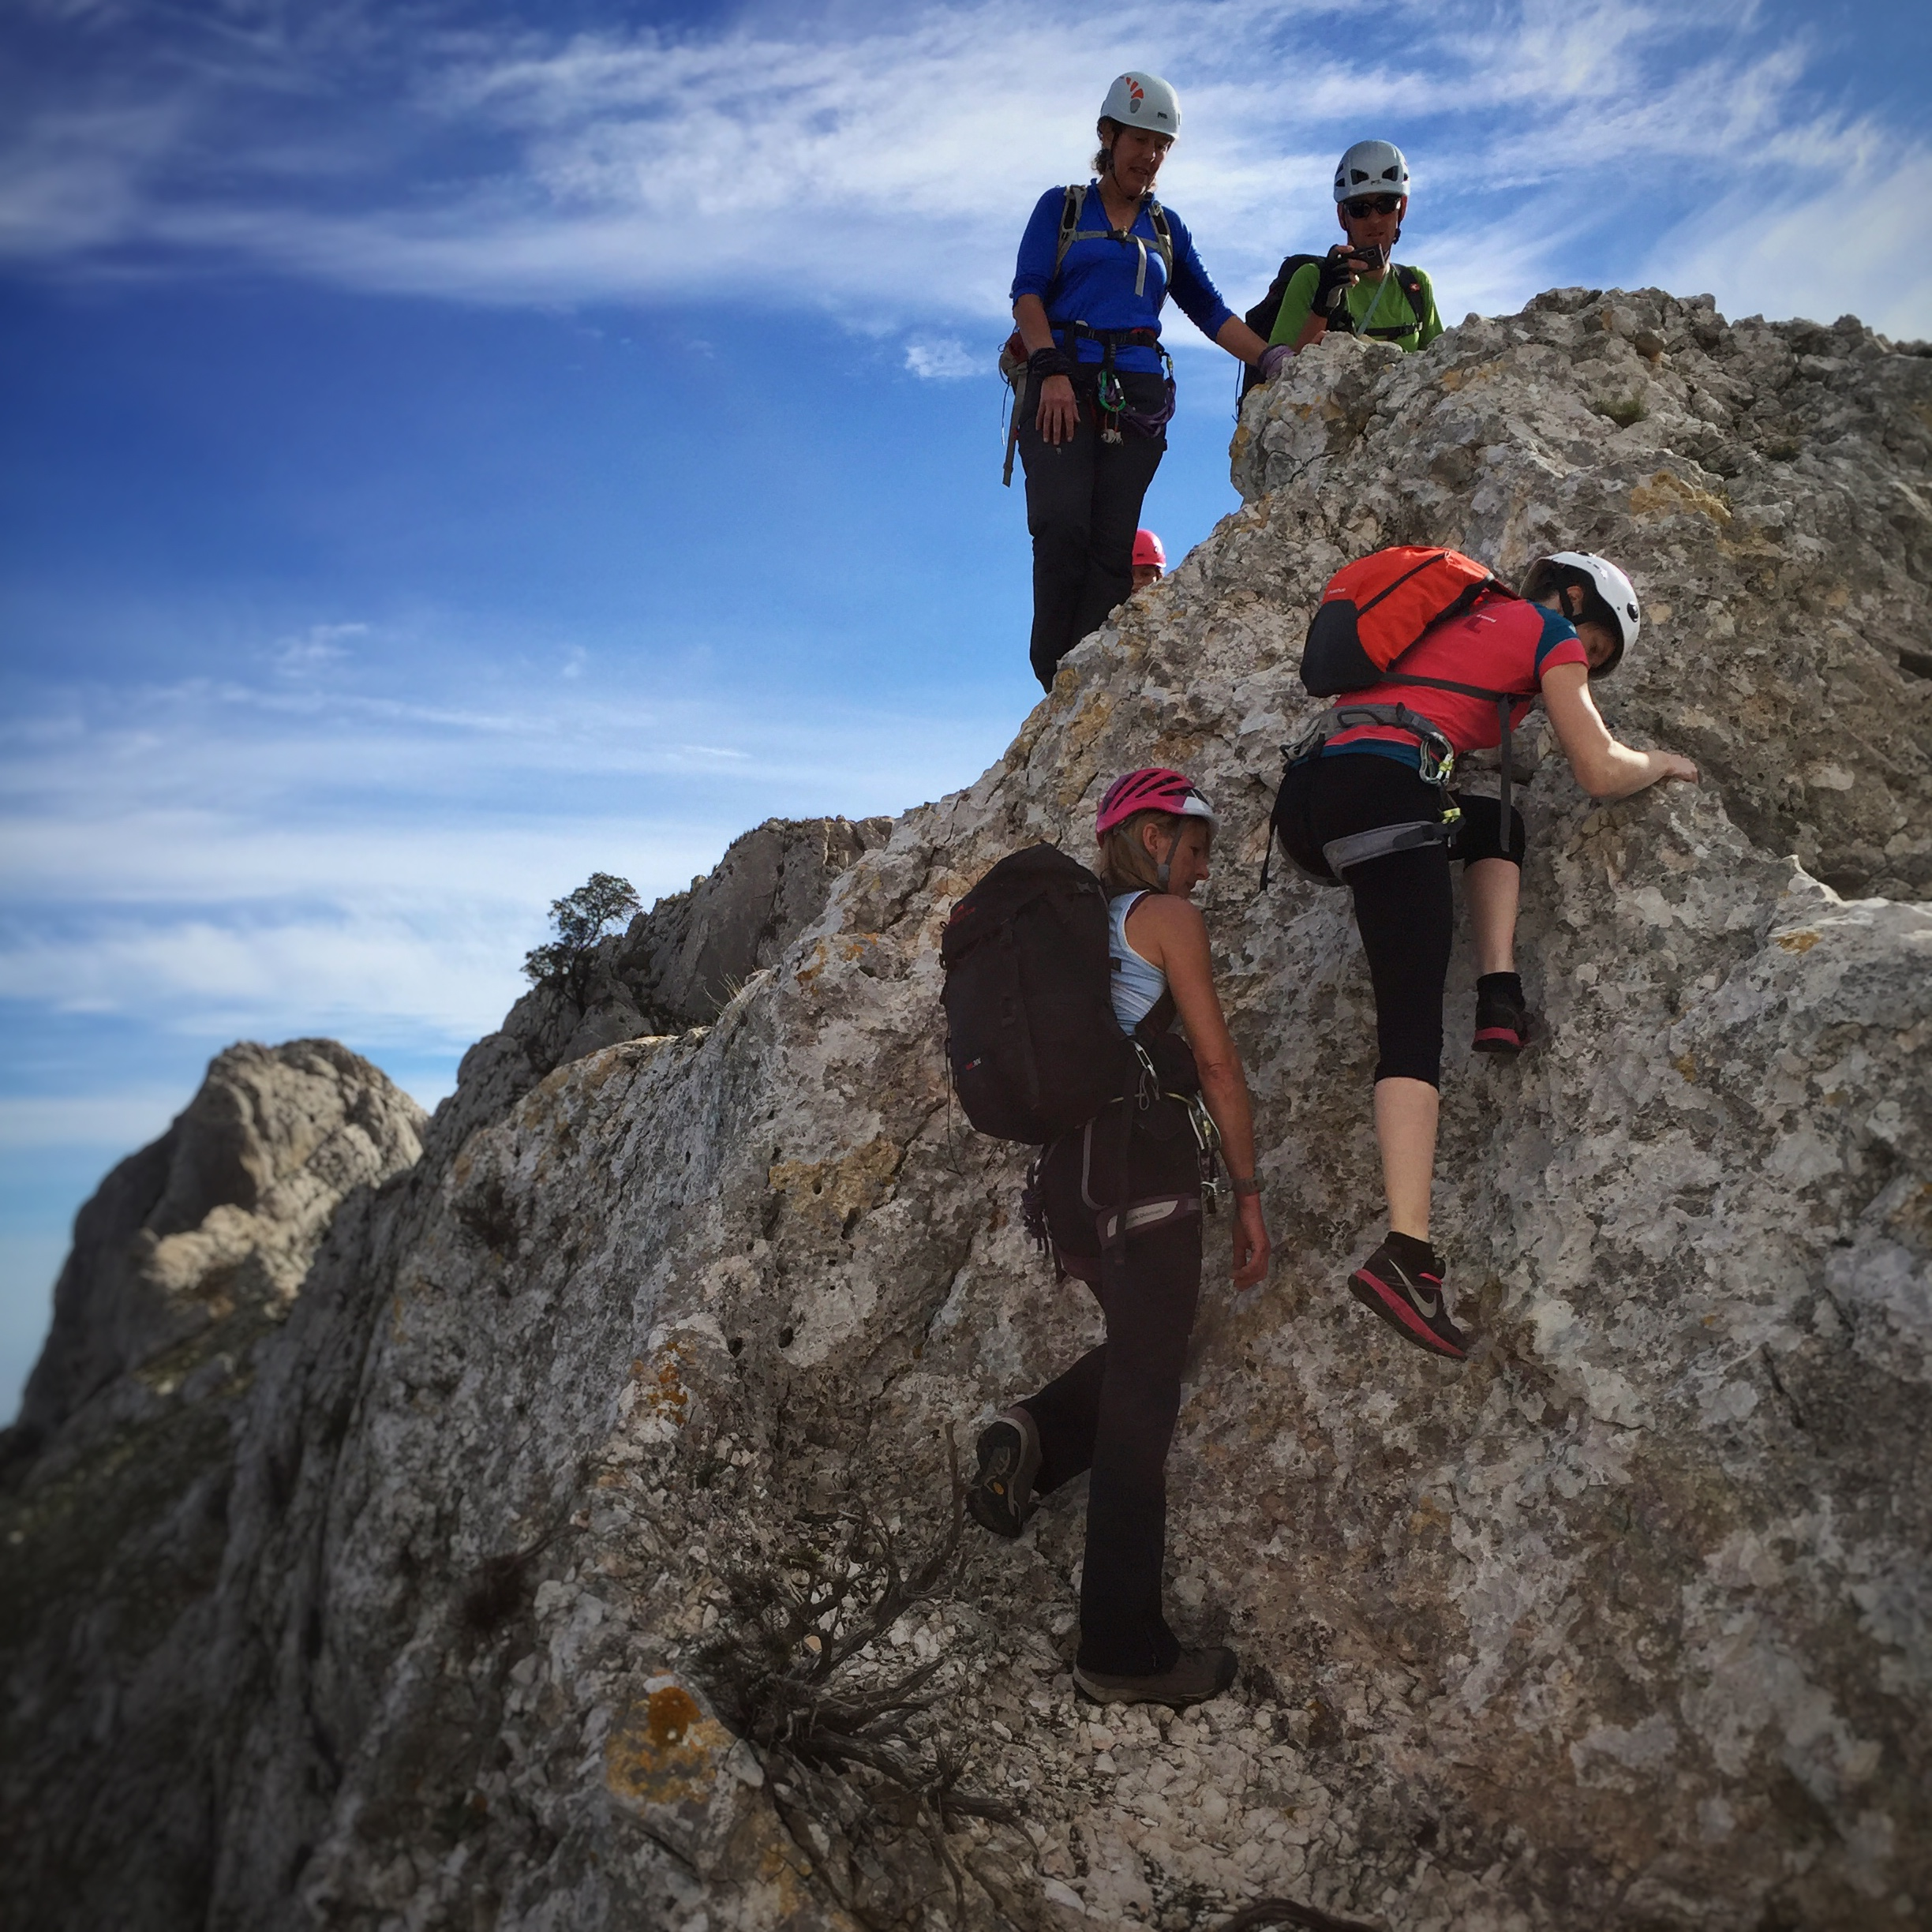 Out in the mountains on the Bernia Ridge traverse